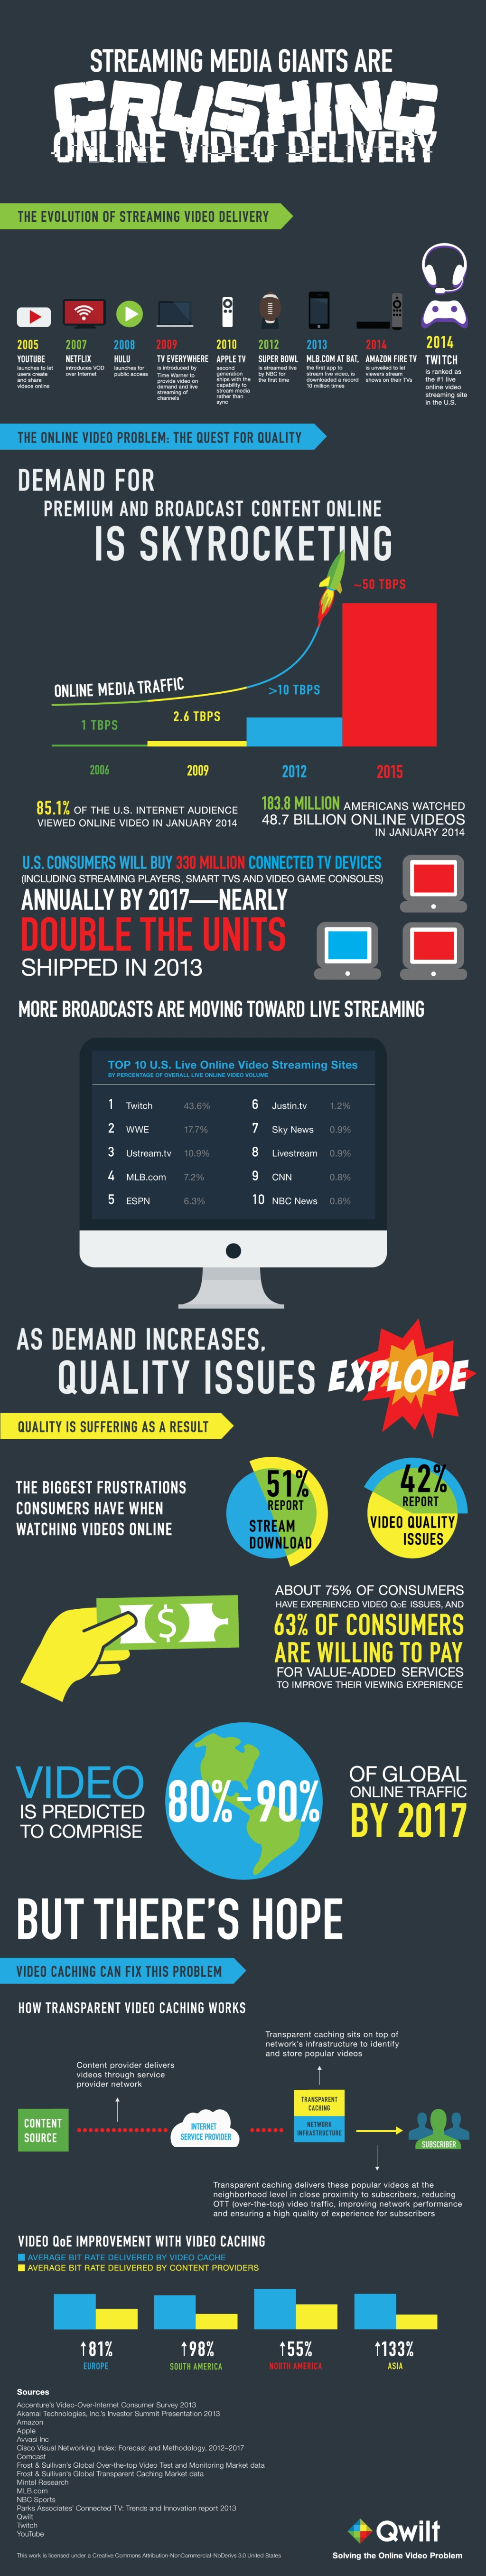 Qwilt streaming infographic